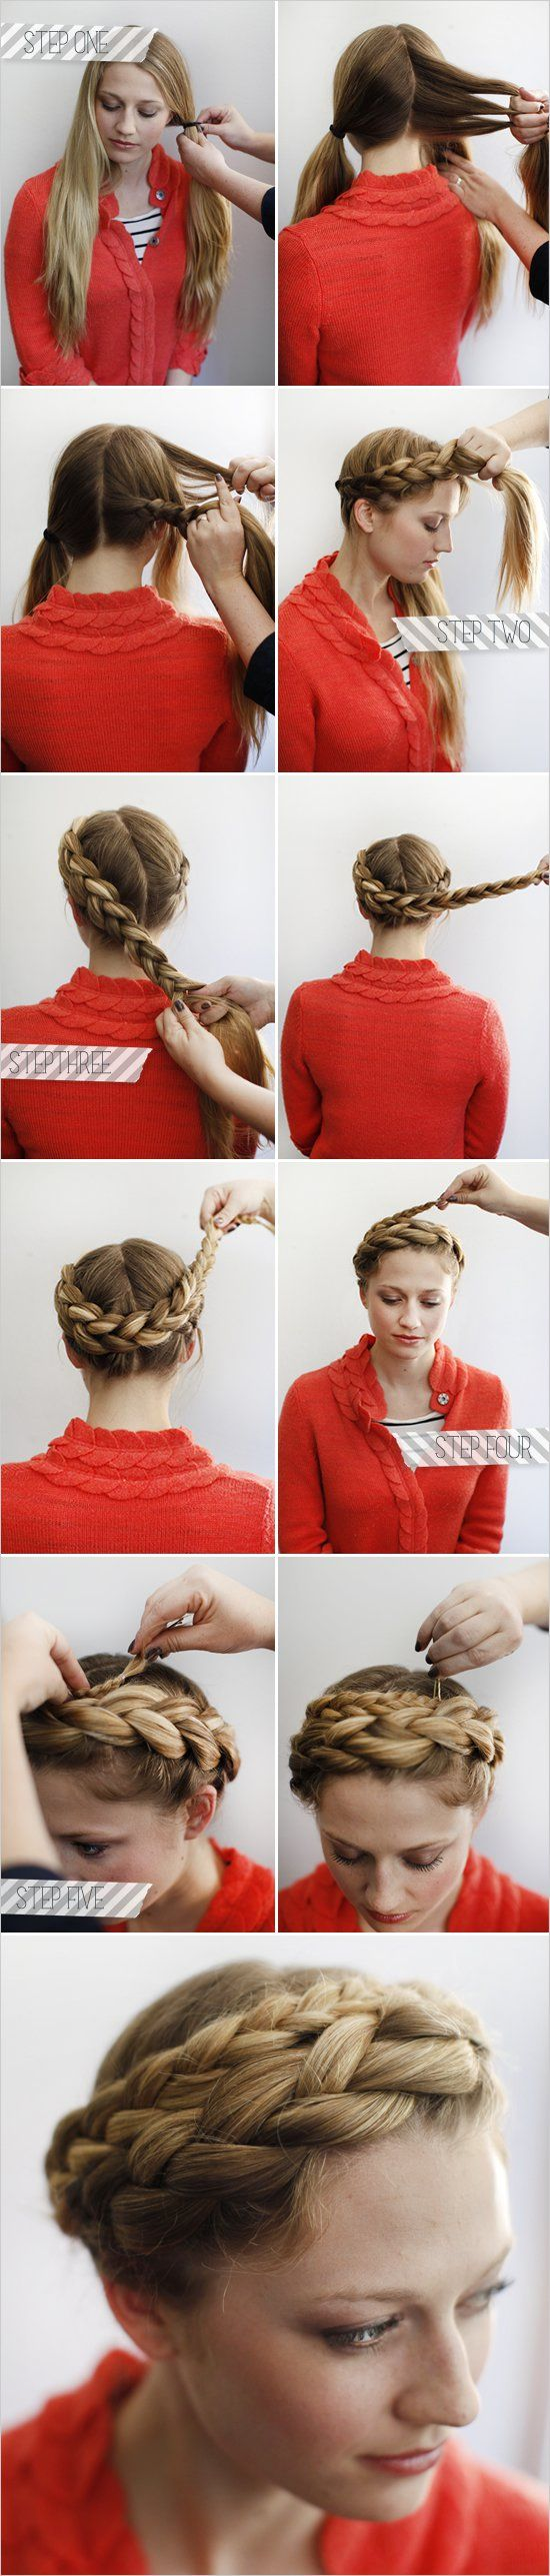 Braided Crown Hairstyle for Summer